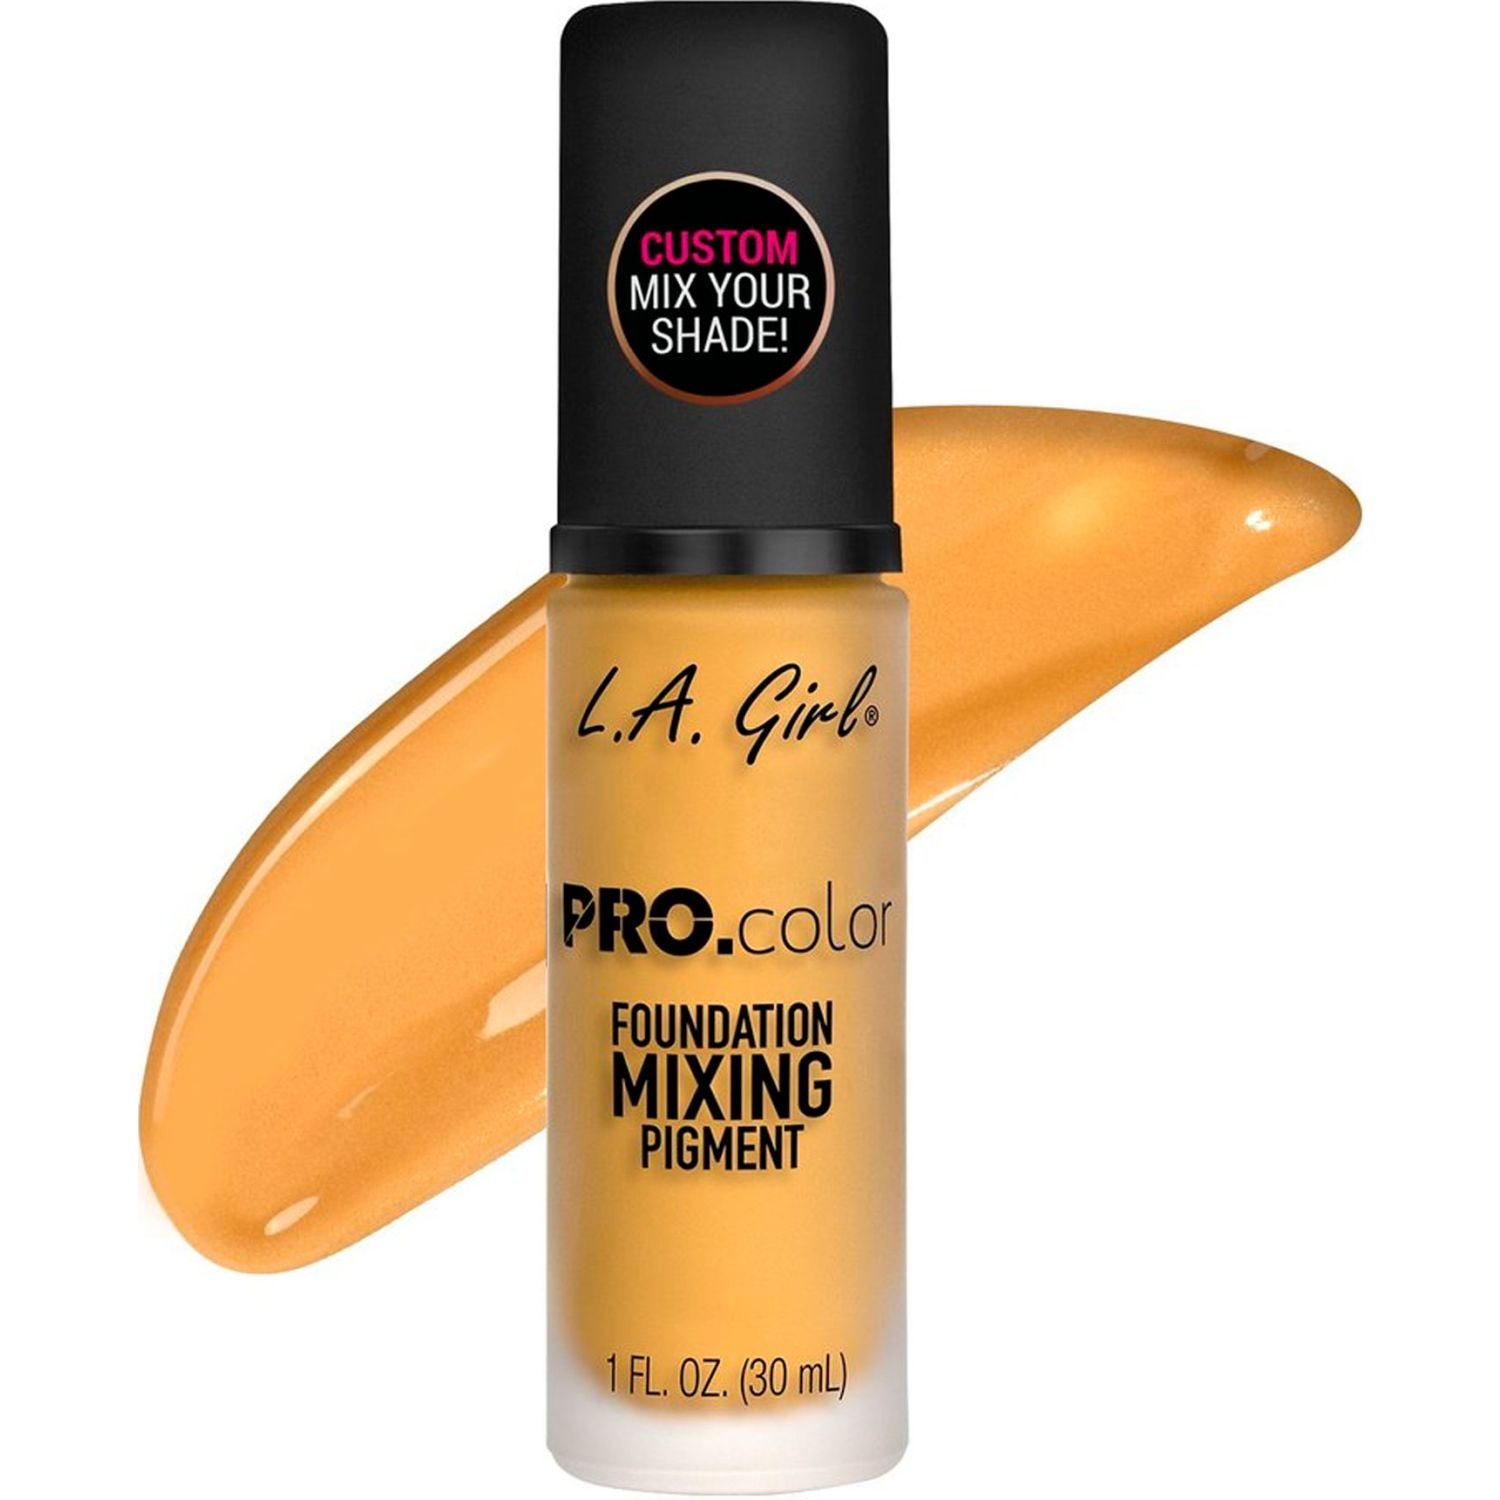 L.a. Girl PRO.COLOR FOUNDATION MIXING PIGMENT Yellow Fundación